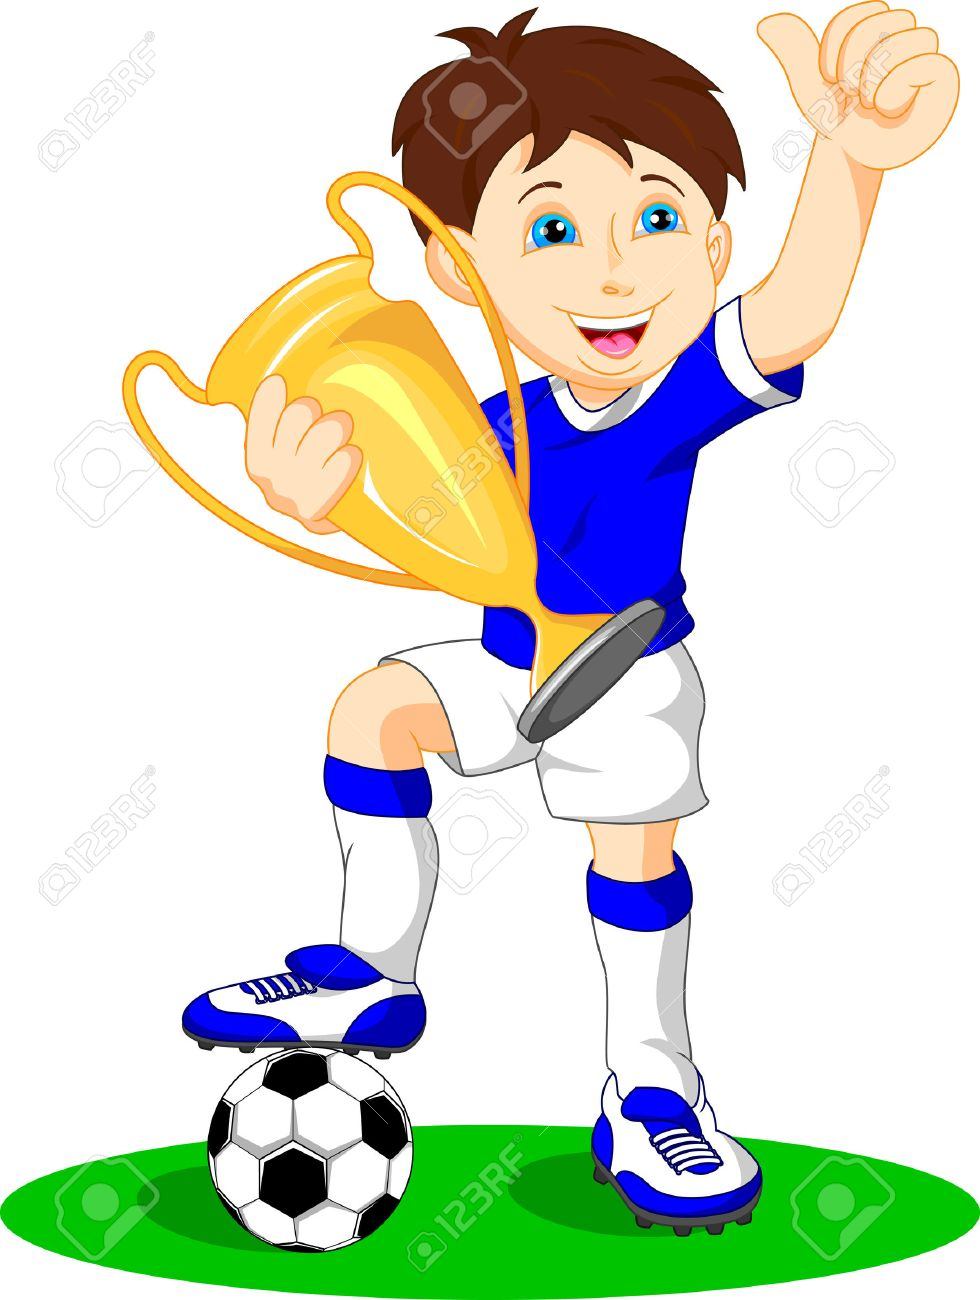 Football Player Clipart at GetDrawings com | Free for